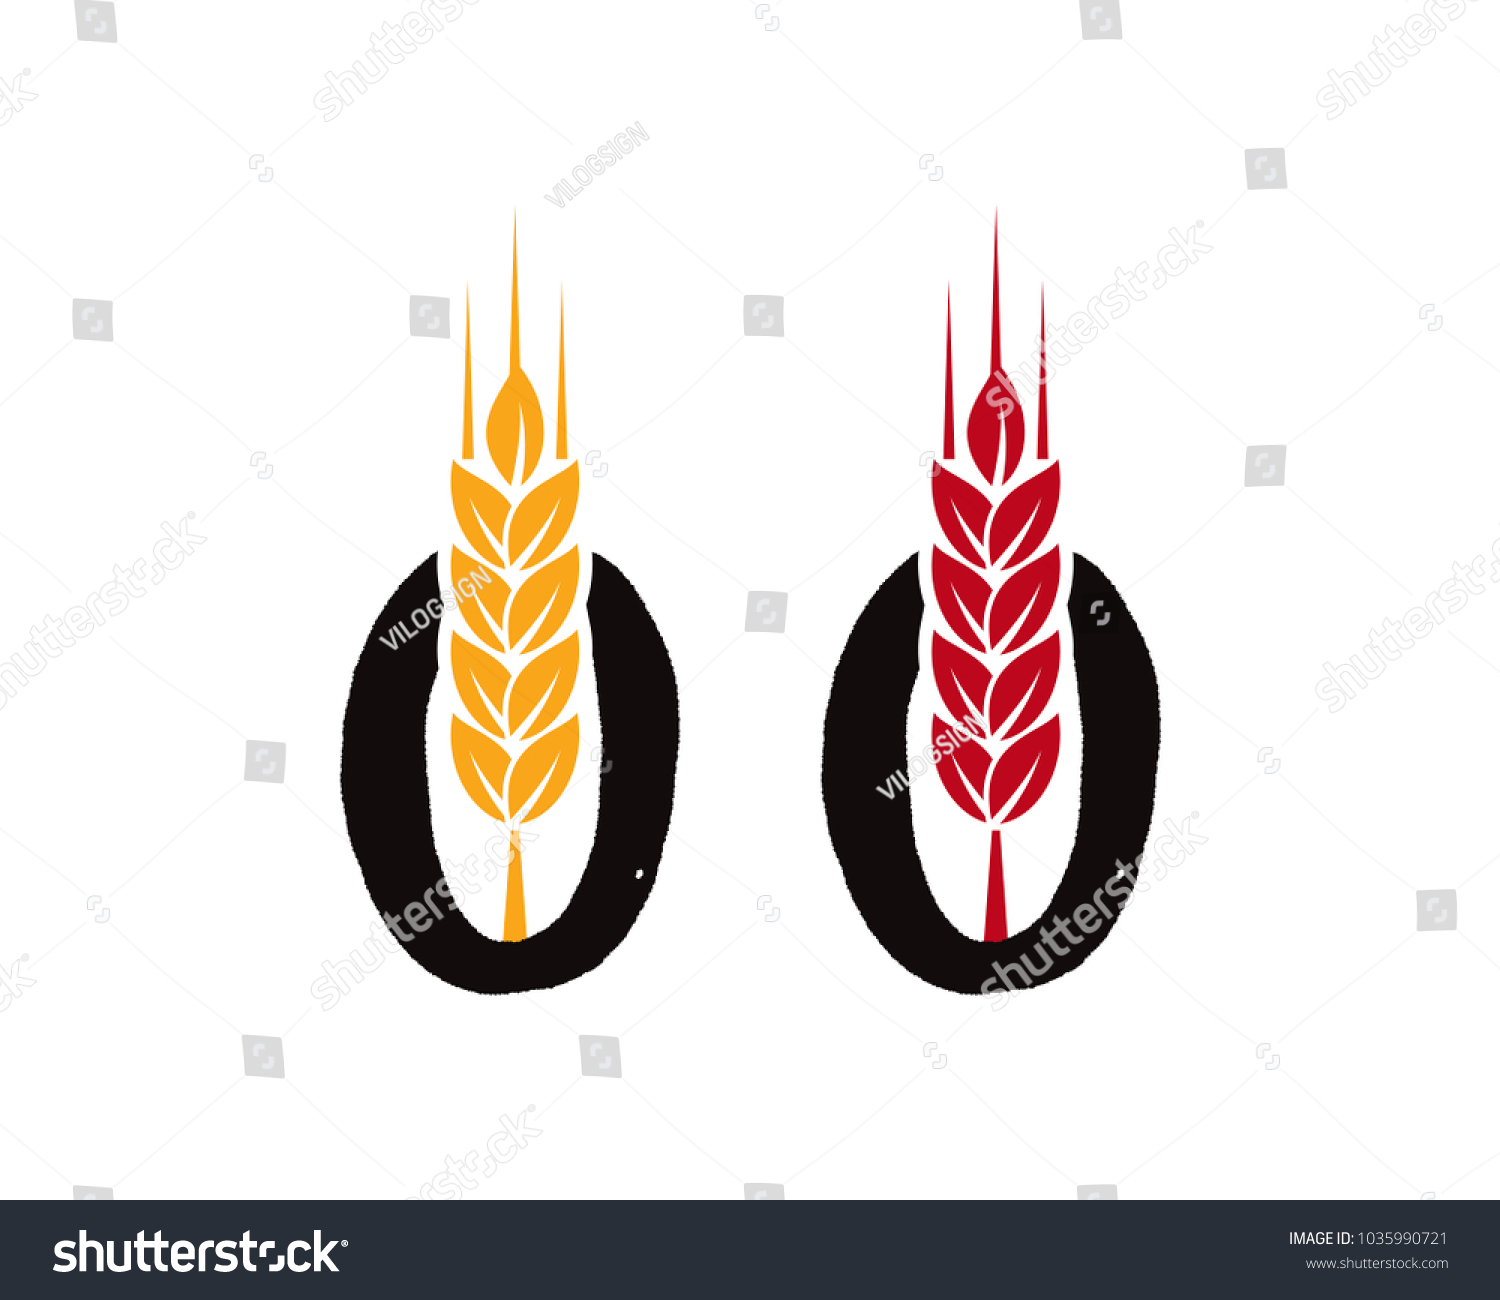 Wheat on initial name letter o stock vector 1035990721 shutterstock wheat on the initial name letter o symbol logo vector biocorpaavc